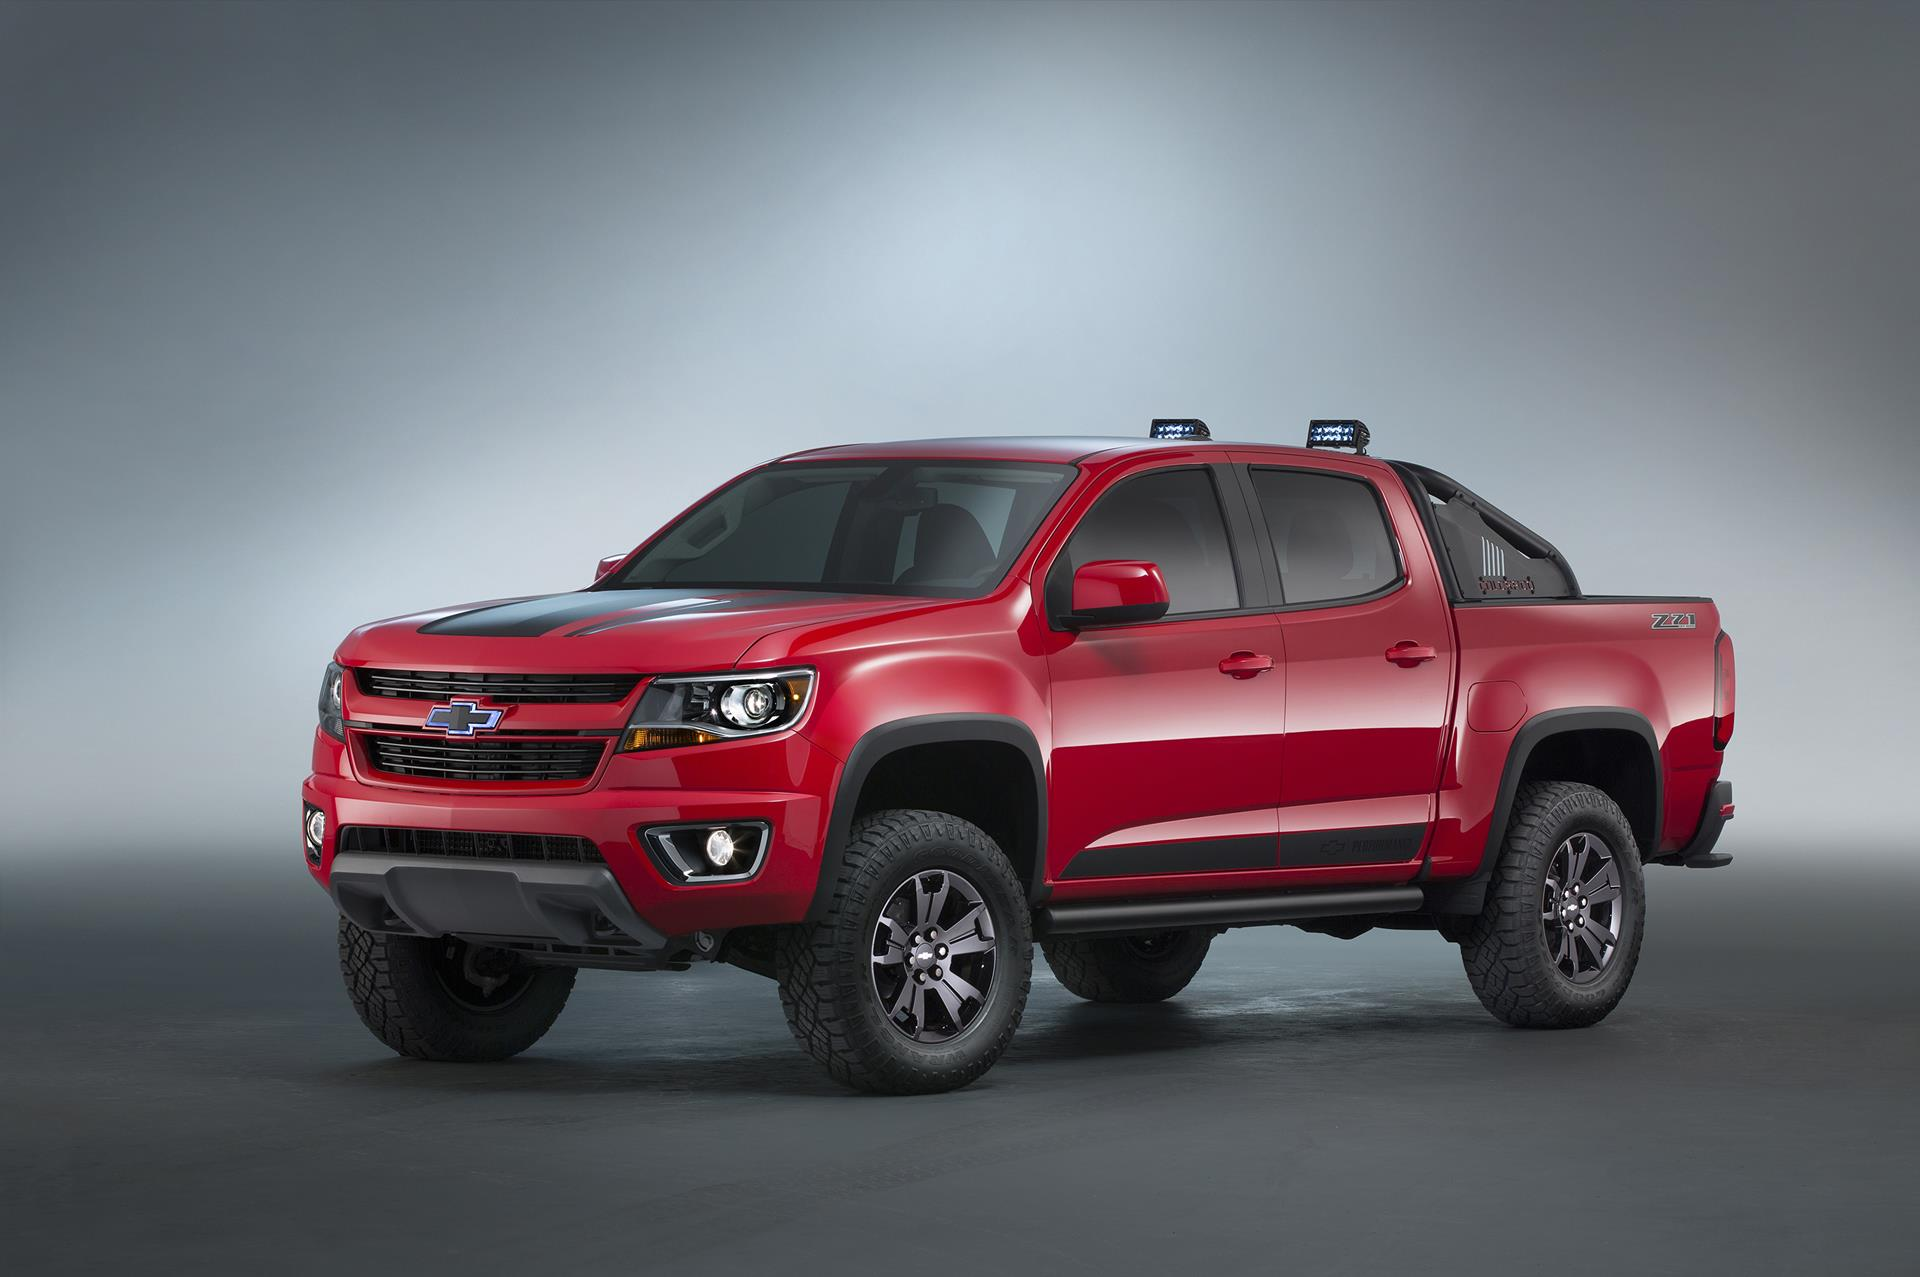 2016 Chevrolet Colorado Z71 Trail Boss 3 0 Technical And Mechanical Specifications